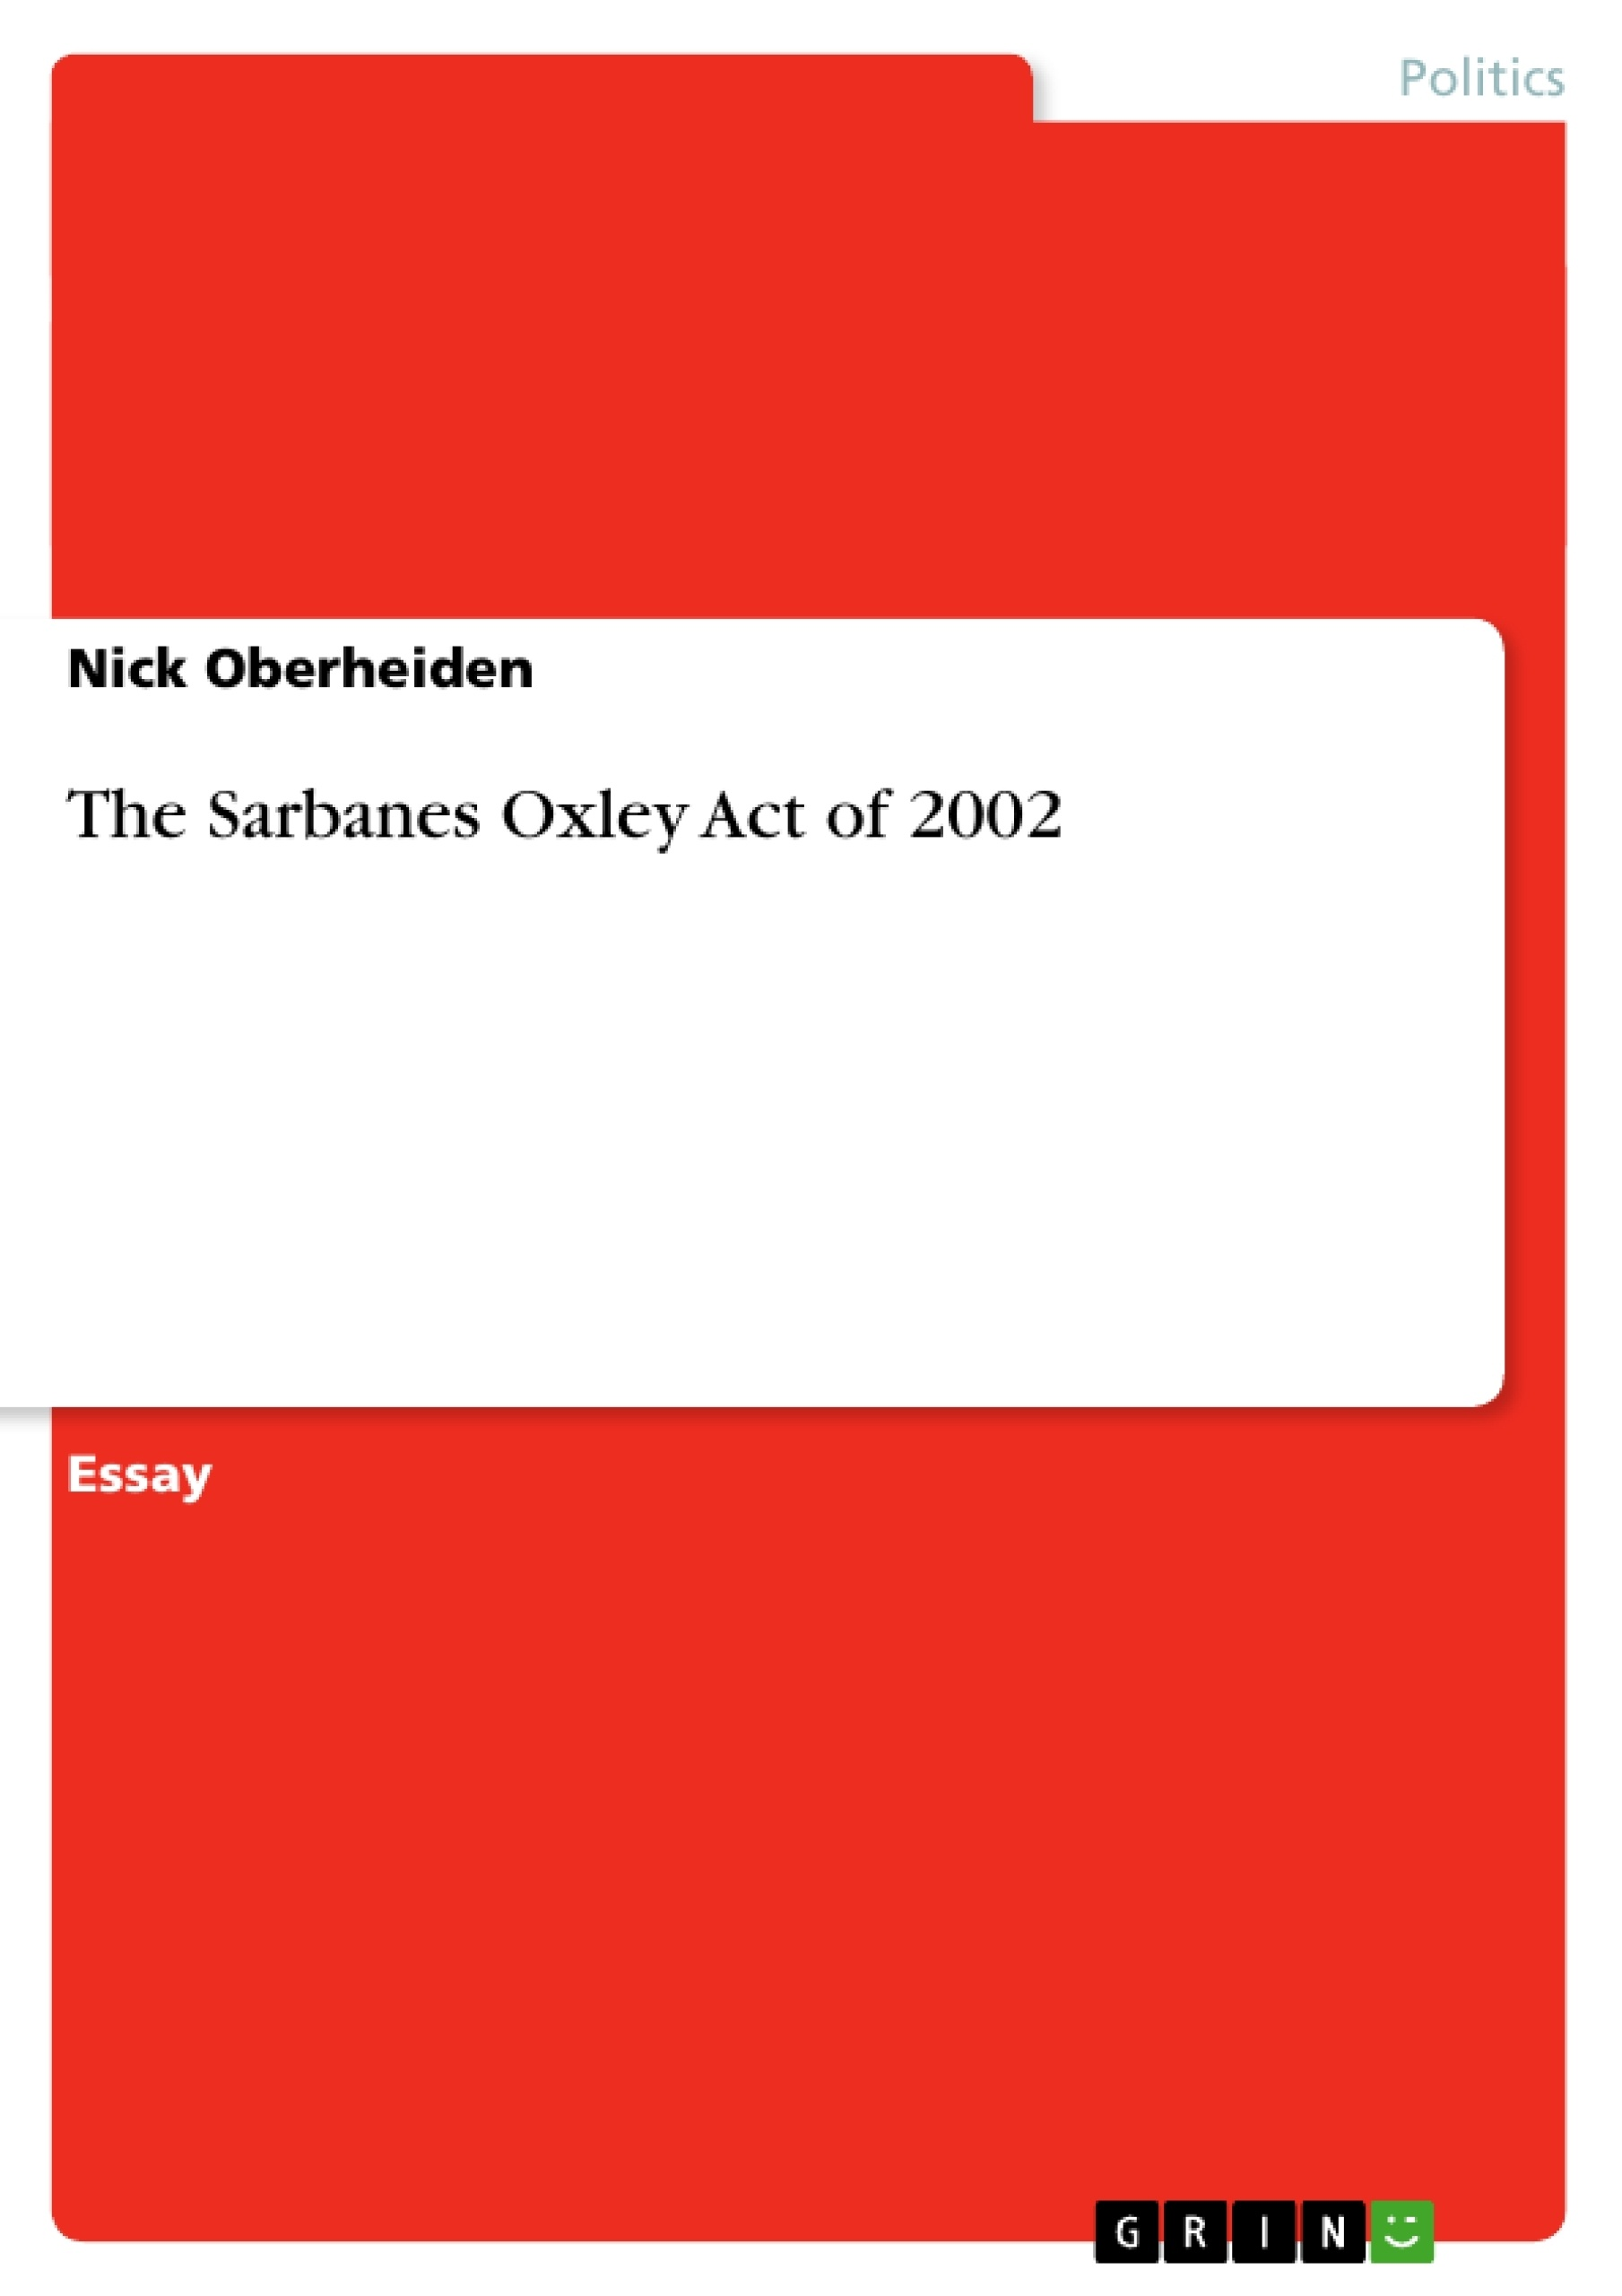 sarbanes oxley act 2002 research paper